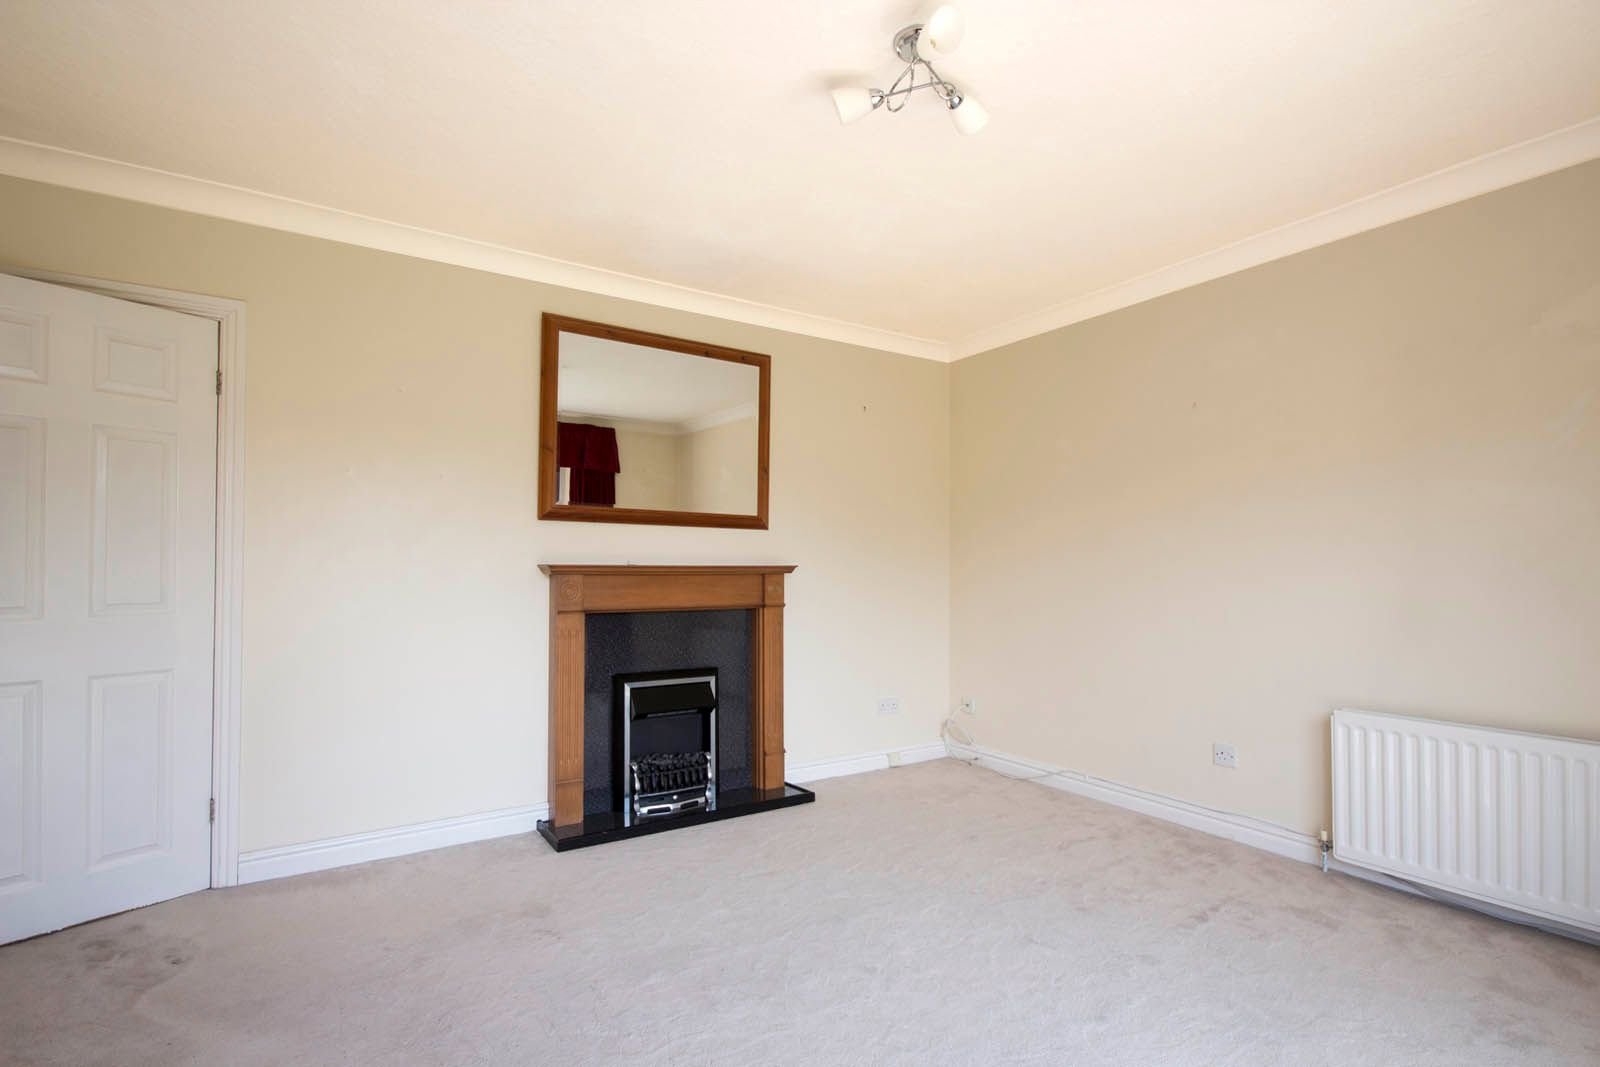 2 bed  for sale in Harsfold Close COMP MAY 2019  - Property Image 5